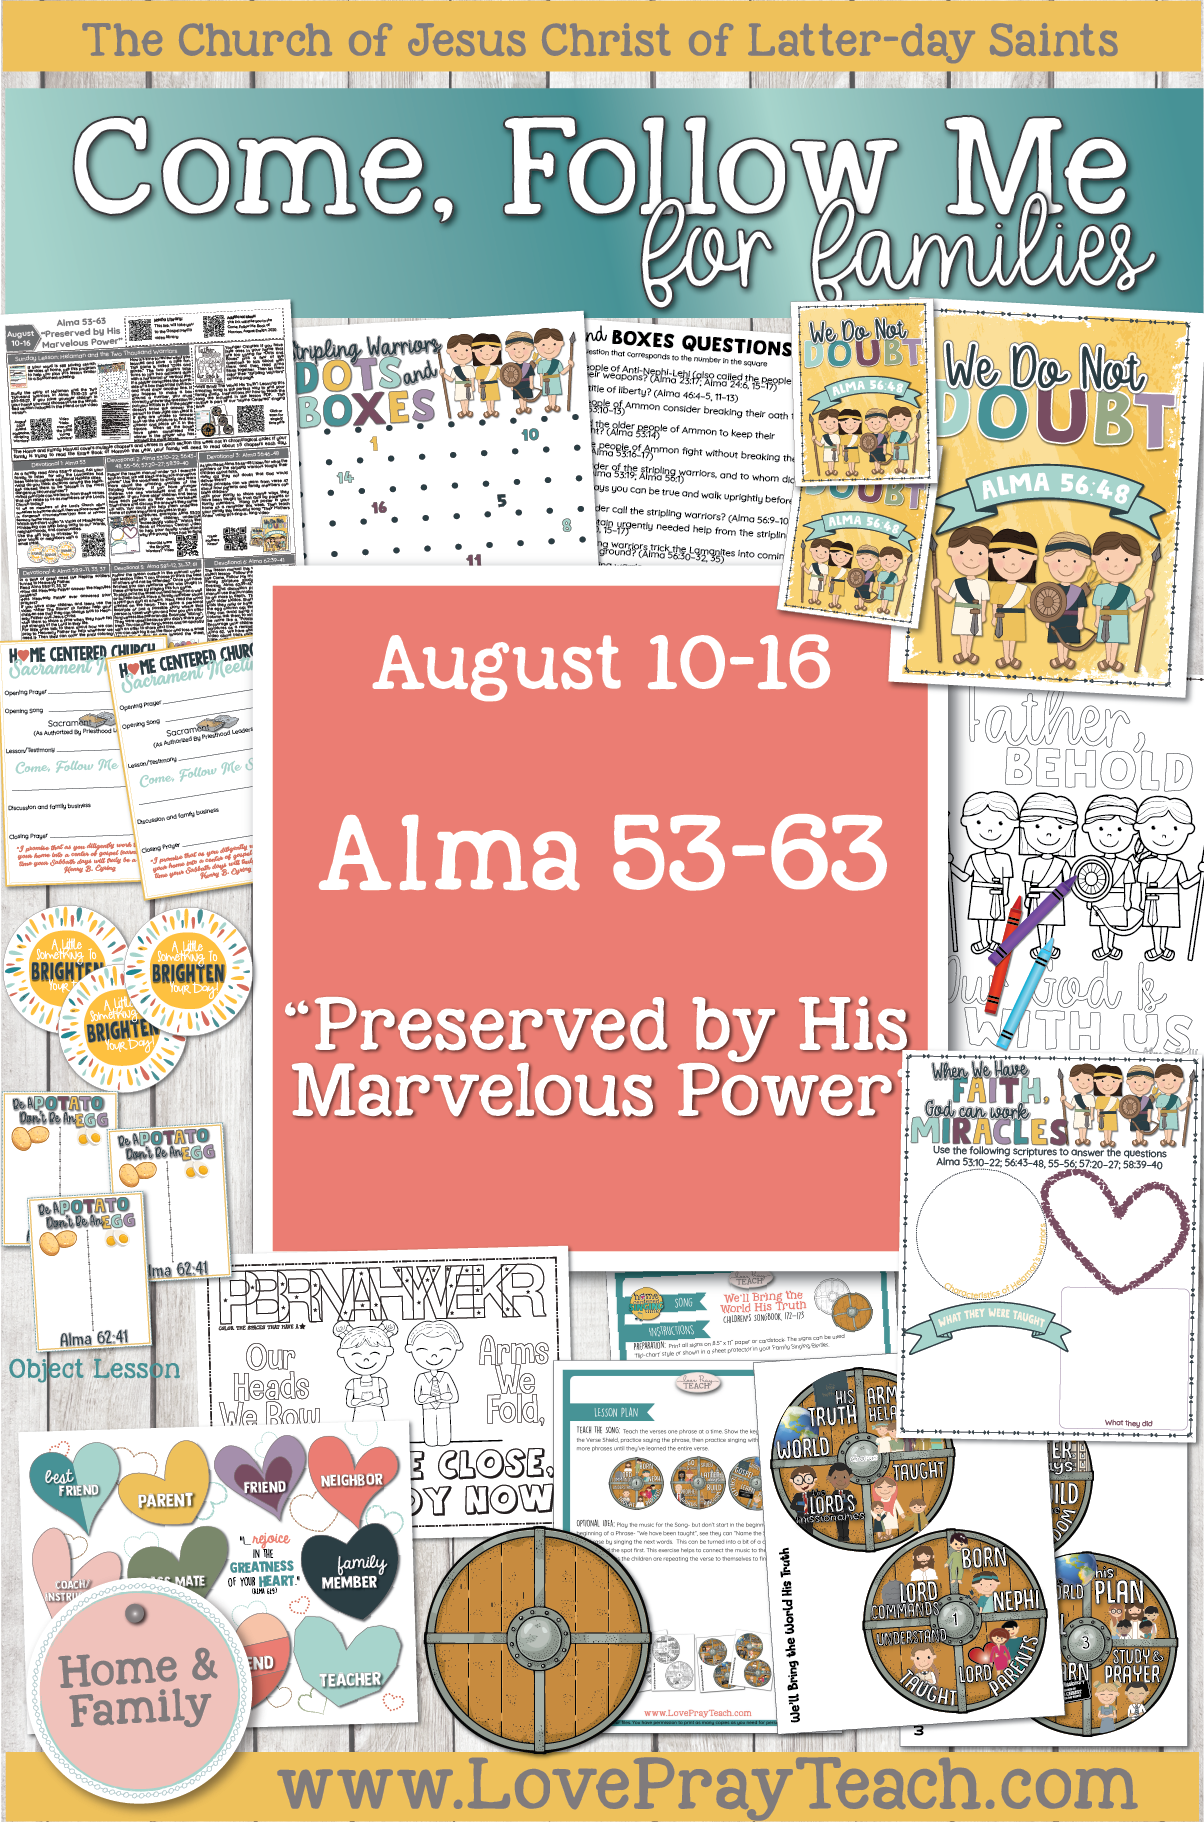 "Come, Follow Me—For Individuals and Families: Book of Mormon 2020 -August Week 3 - August 10-16 Alma 53-63""Preserved by His Marvelous Power"""